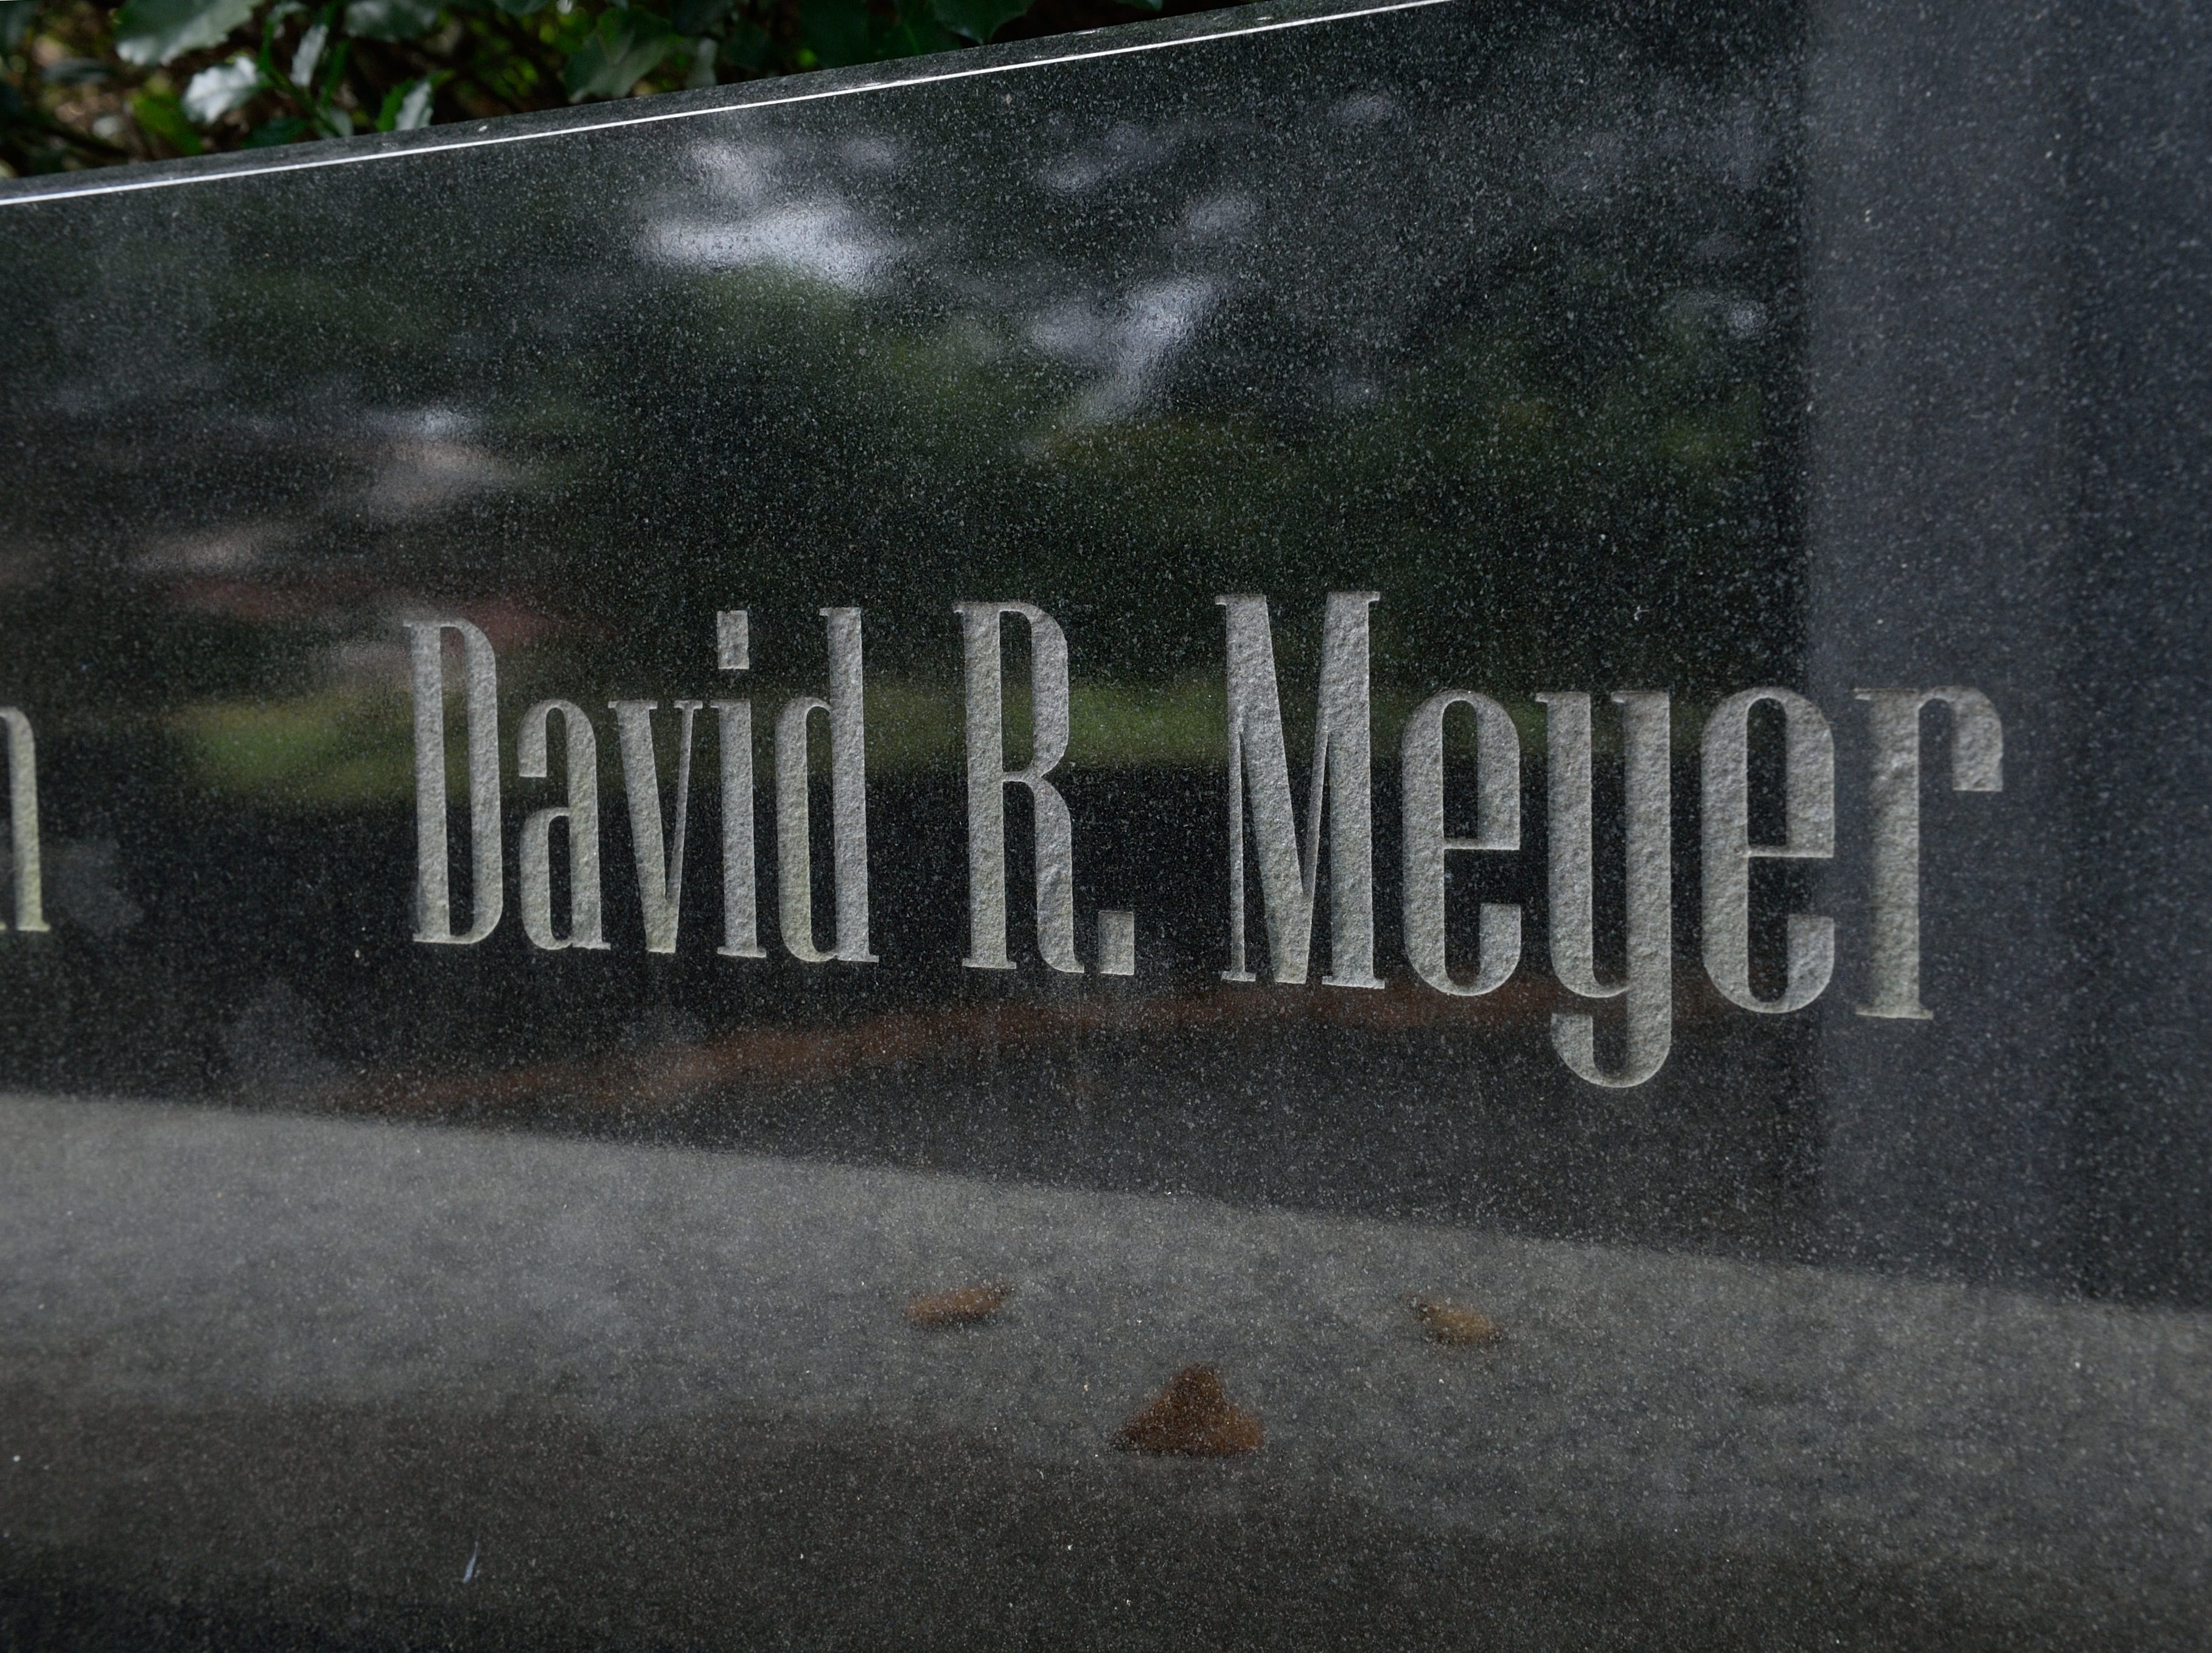 A monument at Veterans Memorial Park in Glen Rock honoring resident David R. Meyer who was lost in the attack on 9/11